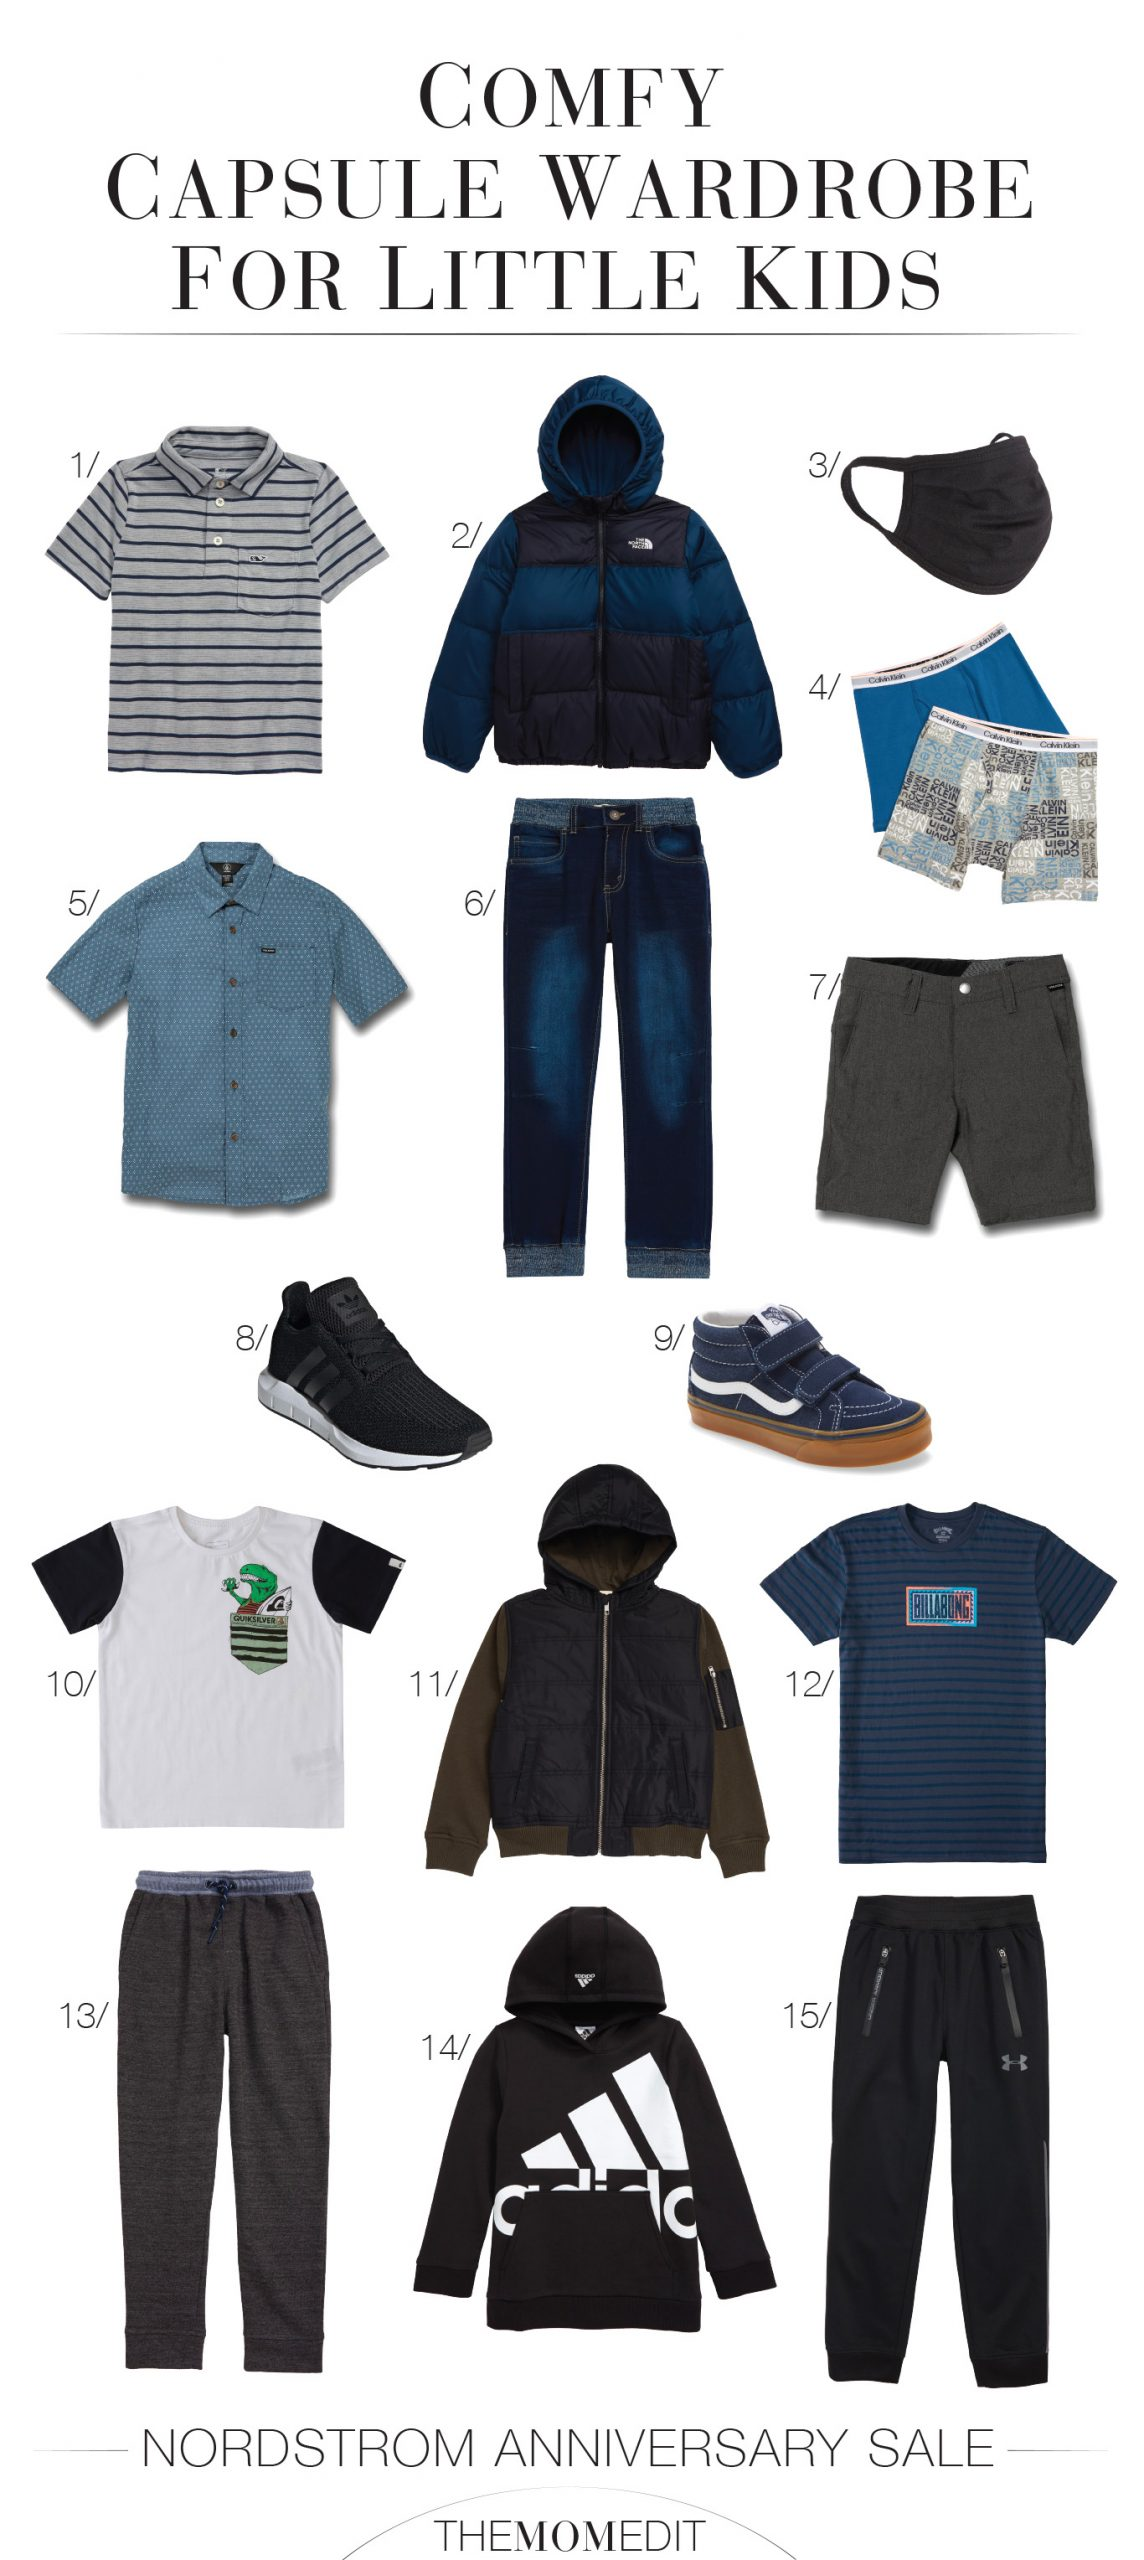 For remote learning, we're looking at soft, stretchy & comfy for kids' clothes. These Nordstrom Anniversary Sale fall capsule wardrobes do it.